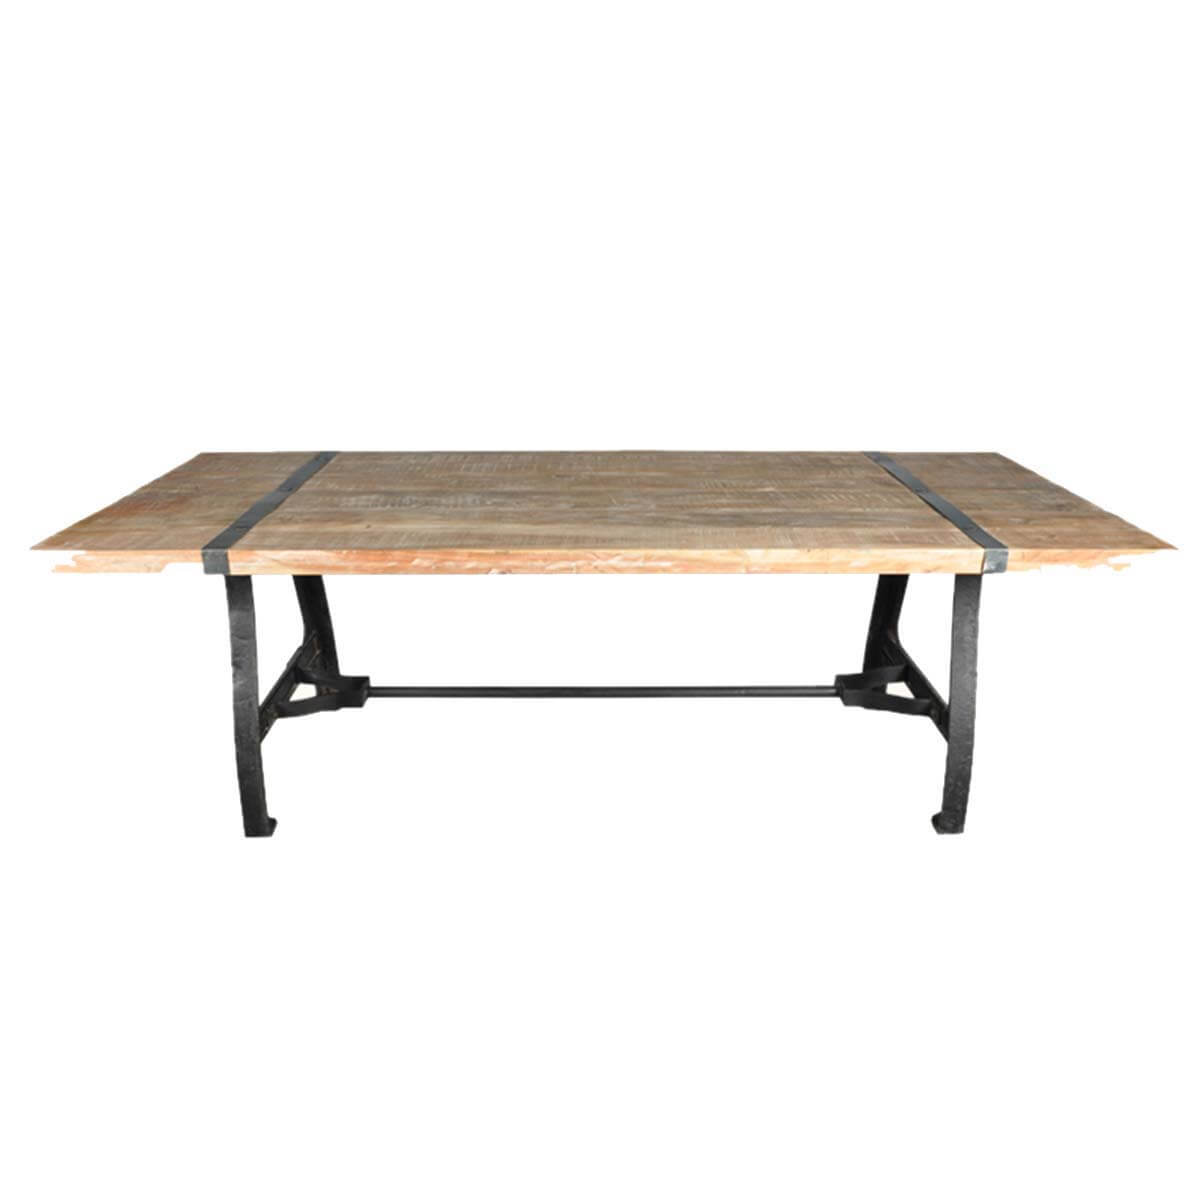 industrial dining table and chairs hanging chair balcony natural wood wrought iron